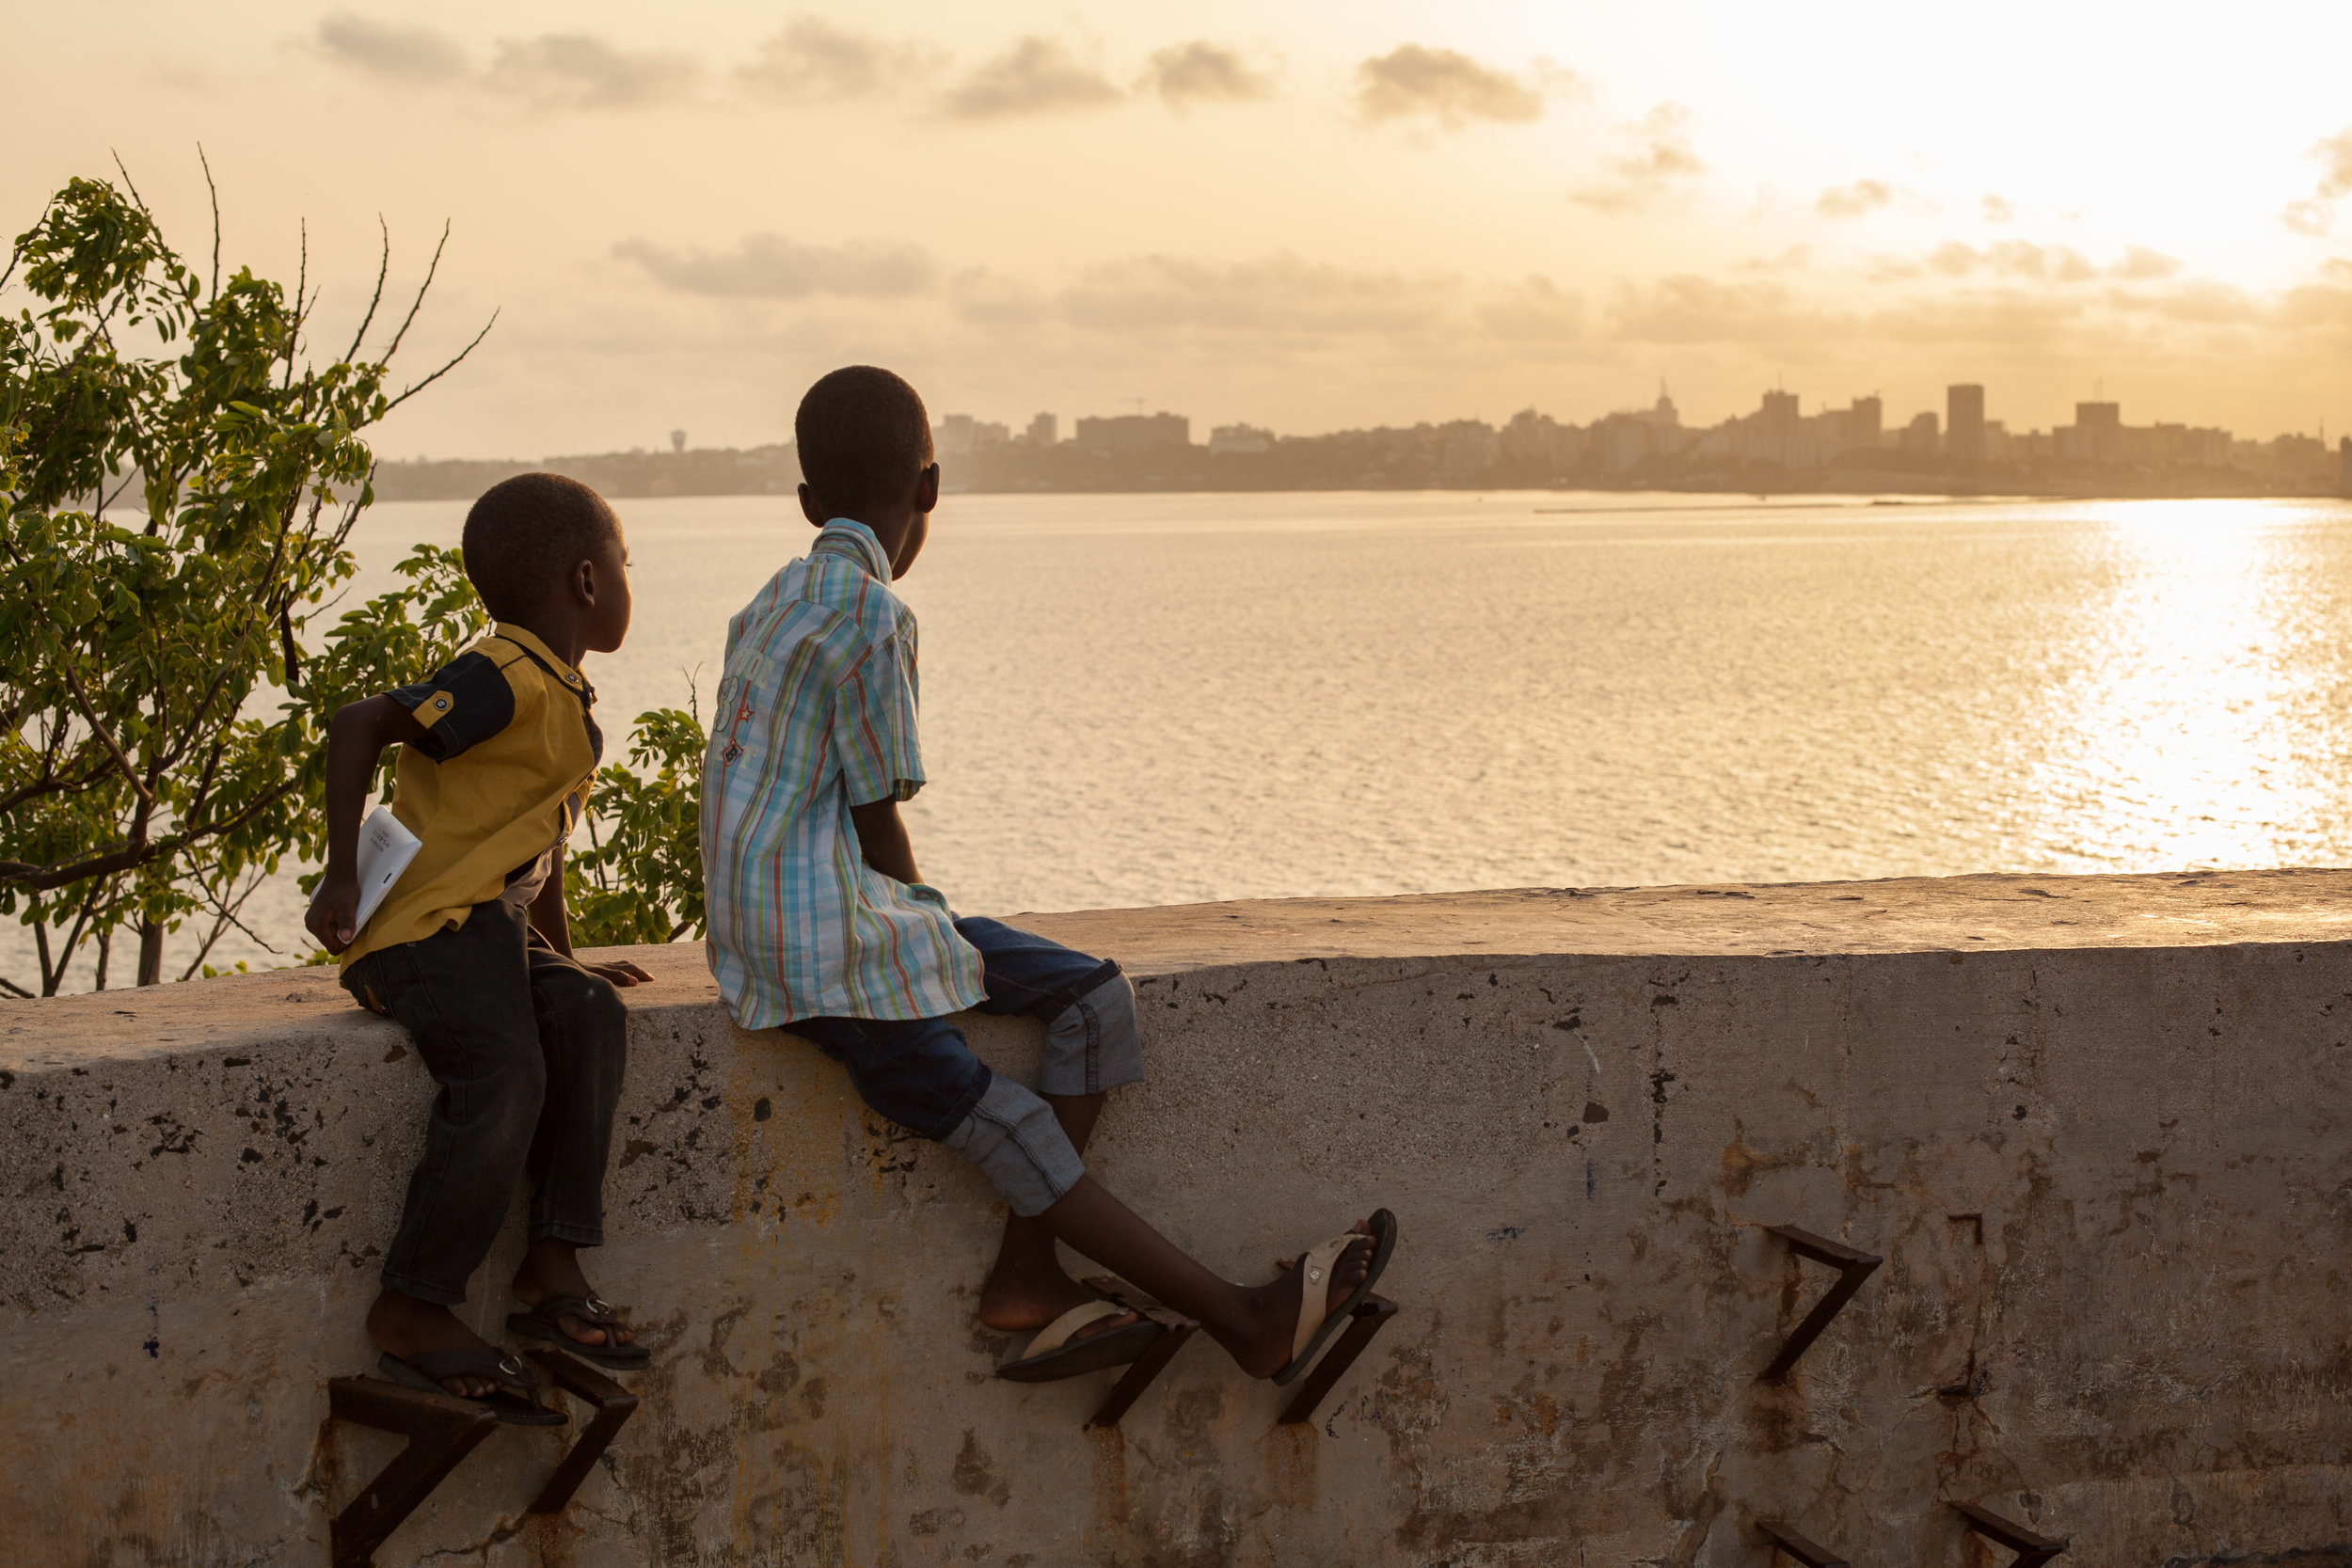 Two African boys at sunset on the Island of Gorée, Dakar, Senegal.